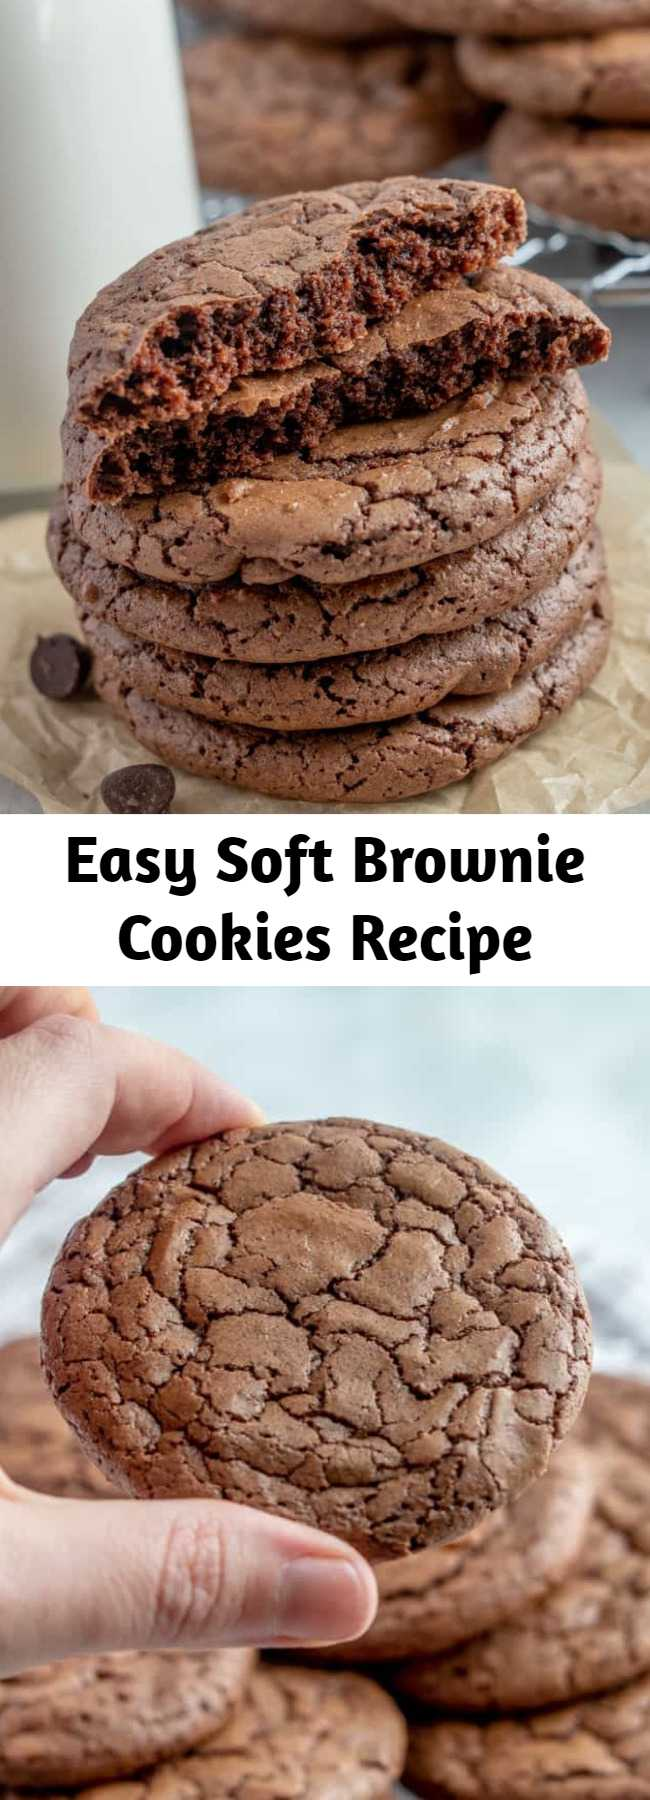 Easy Soft Brownie Cookies Recipe - Easy, delicious and soft, these Brownie Cookies are one of the most perfect additions to your dessert menu! Chocolatey, chewy and taste just like a brownie. #cookies #chocolate #brownies #desserts #baking #easyrecipe #browniecookies #sweets